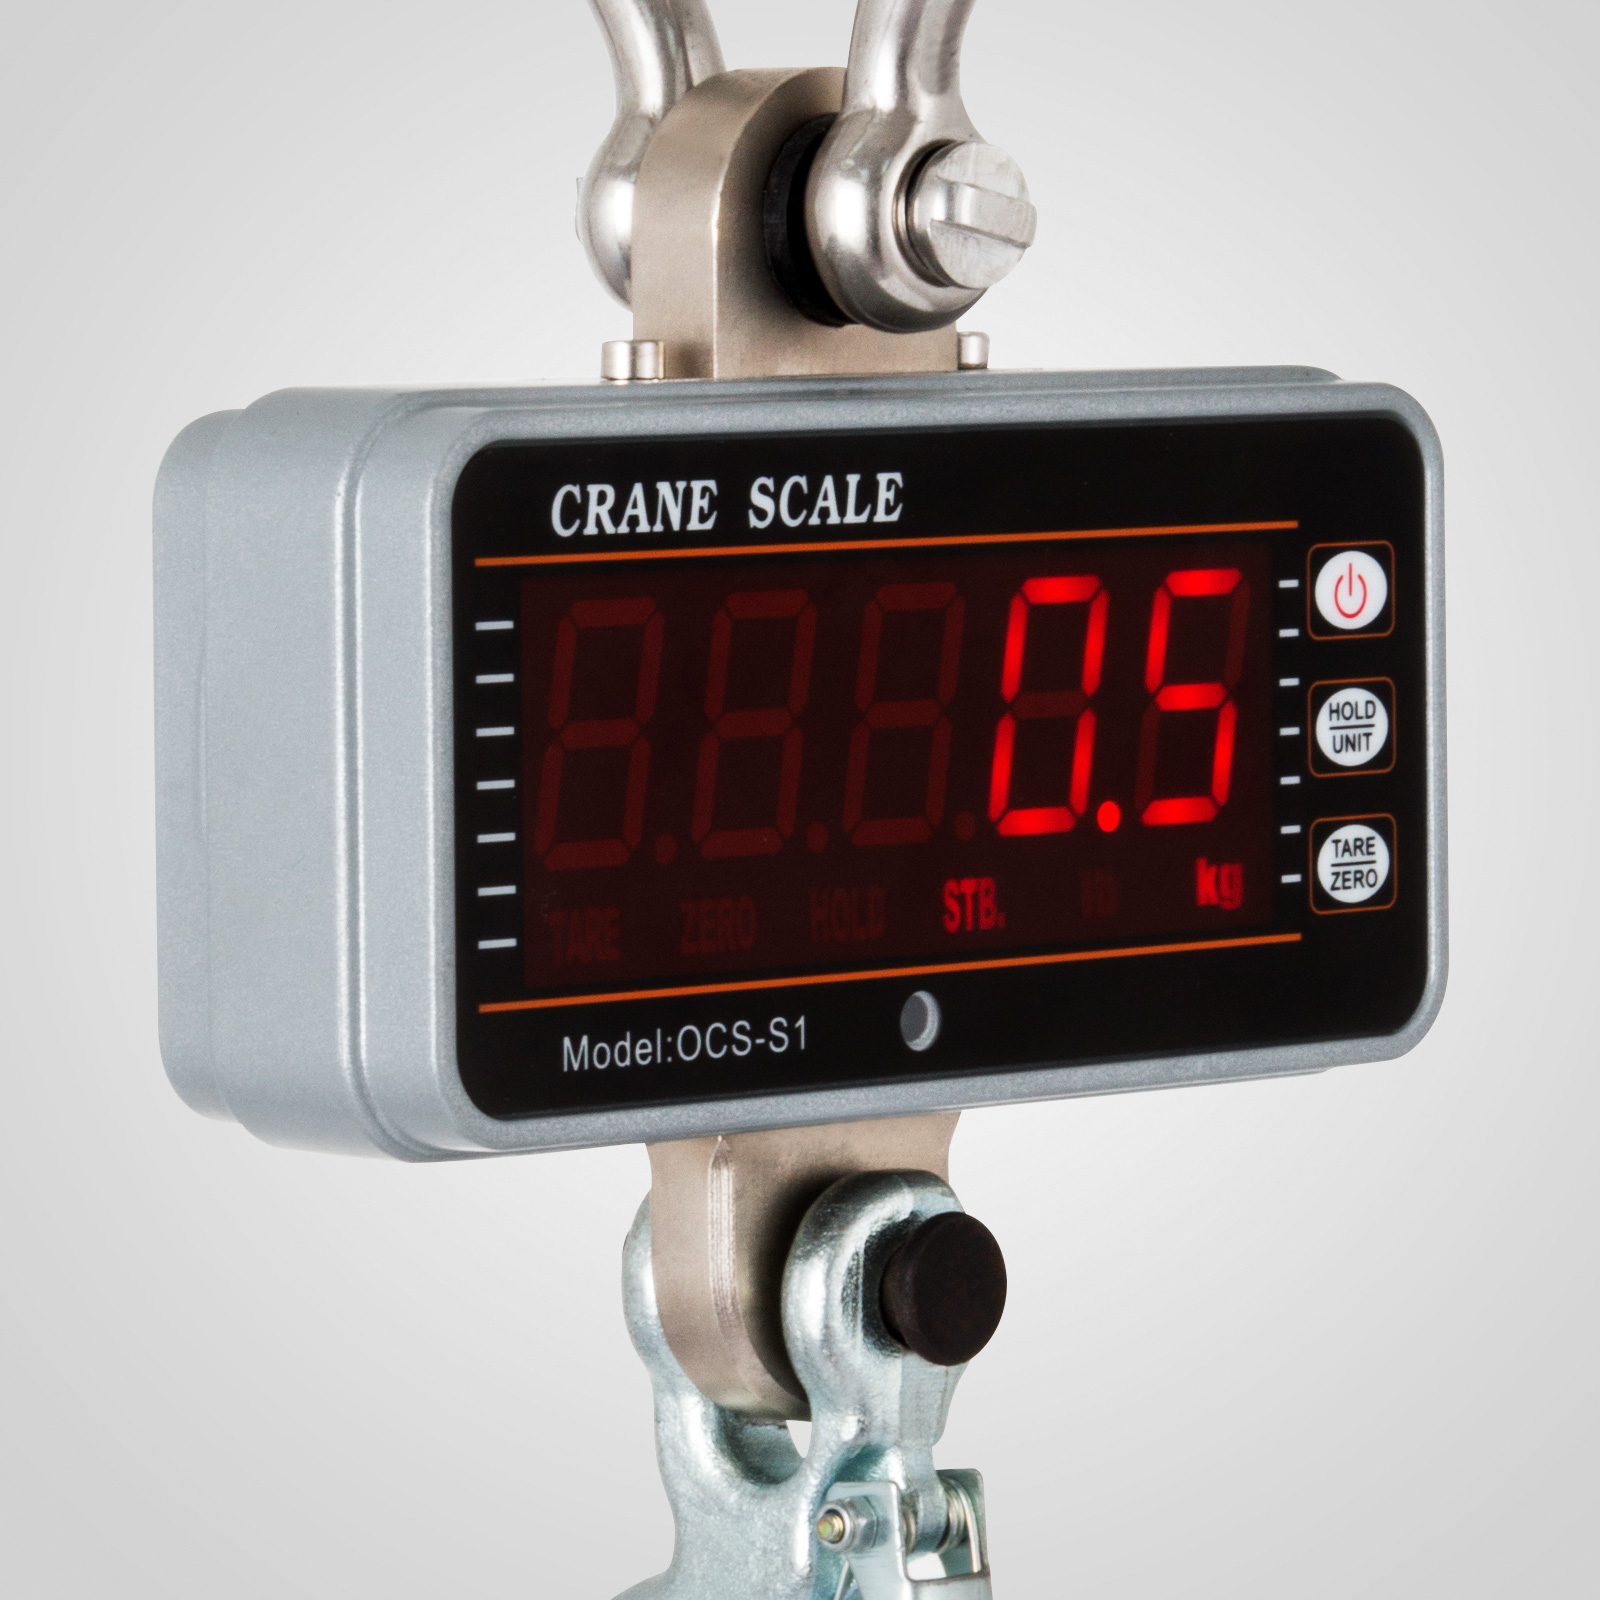 thumbnail 58 - 1T/3T/5T Digital Crane Scales Hanging Scale Electronic Scales Accurate Sensitive